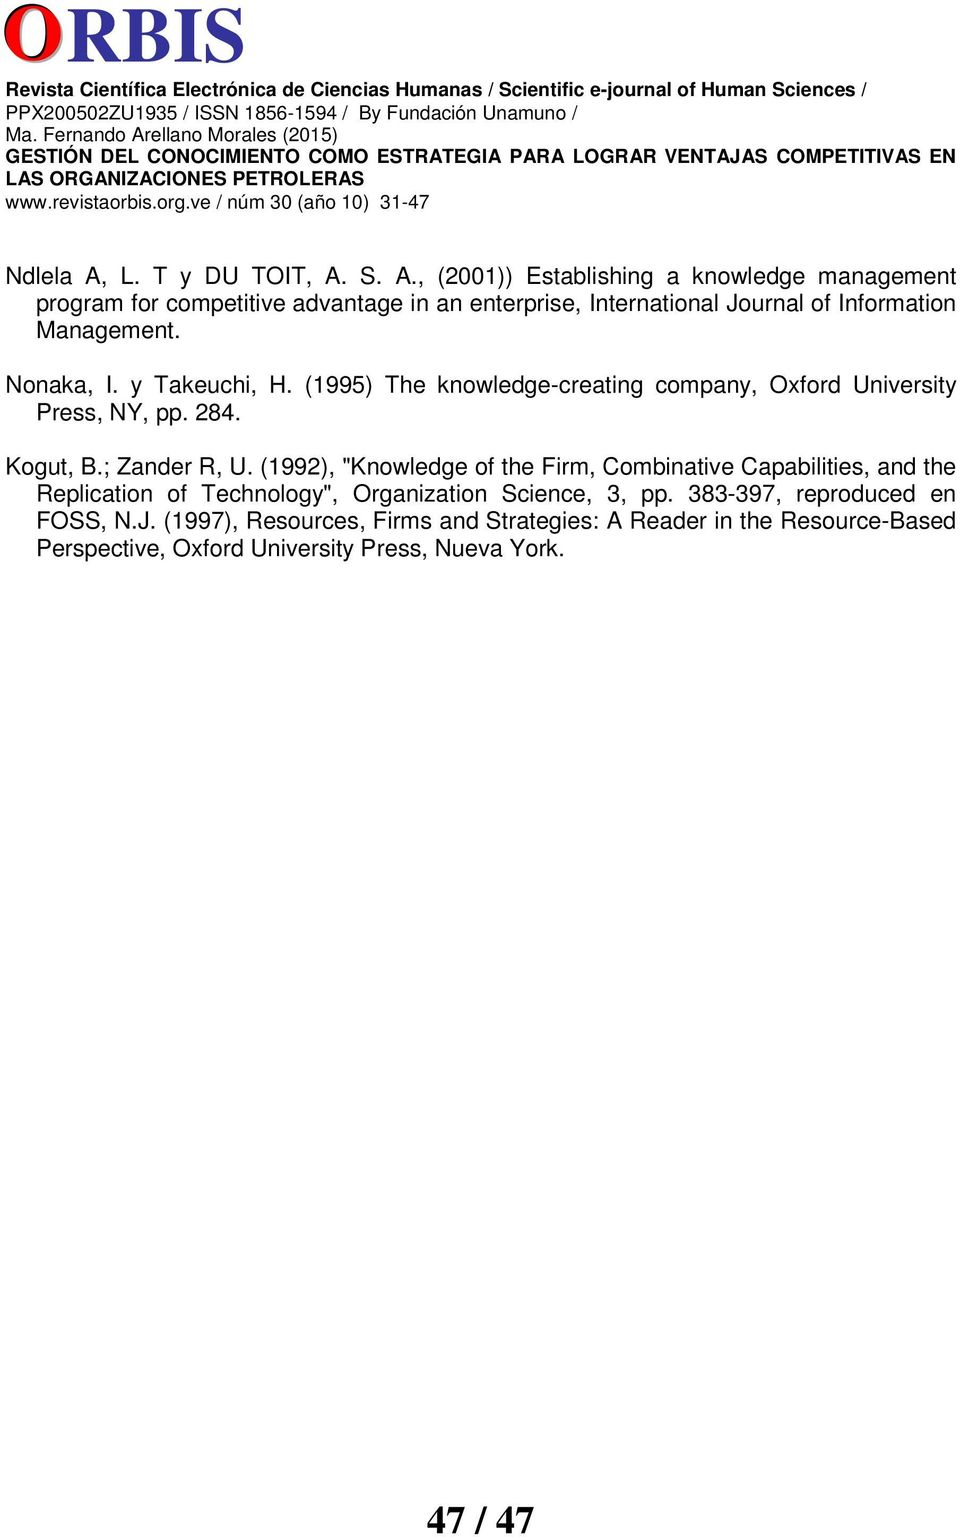 S. A., (2001)) Establishing a knowledge management program for competitive advantage in an enterprise, International Journal of Information